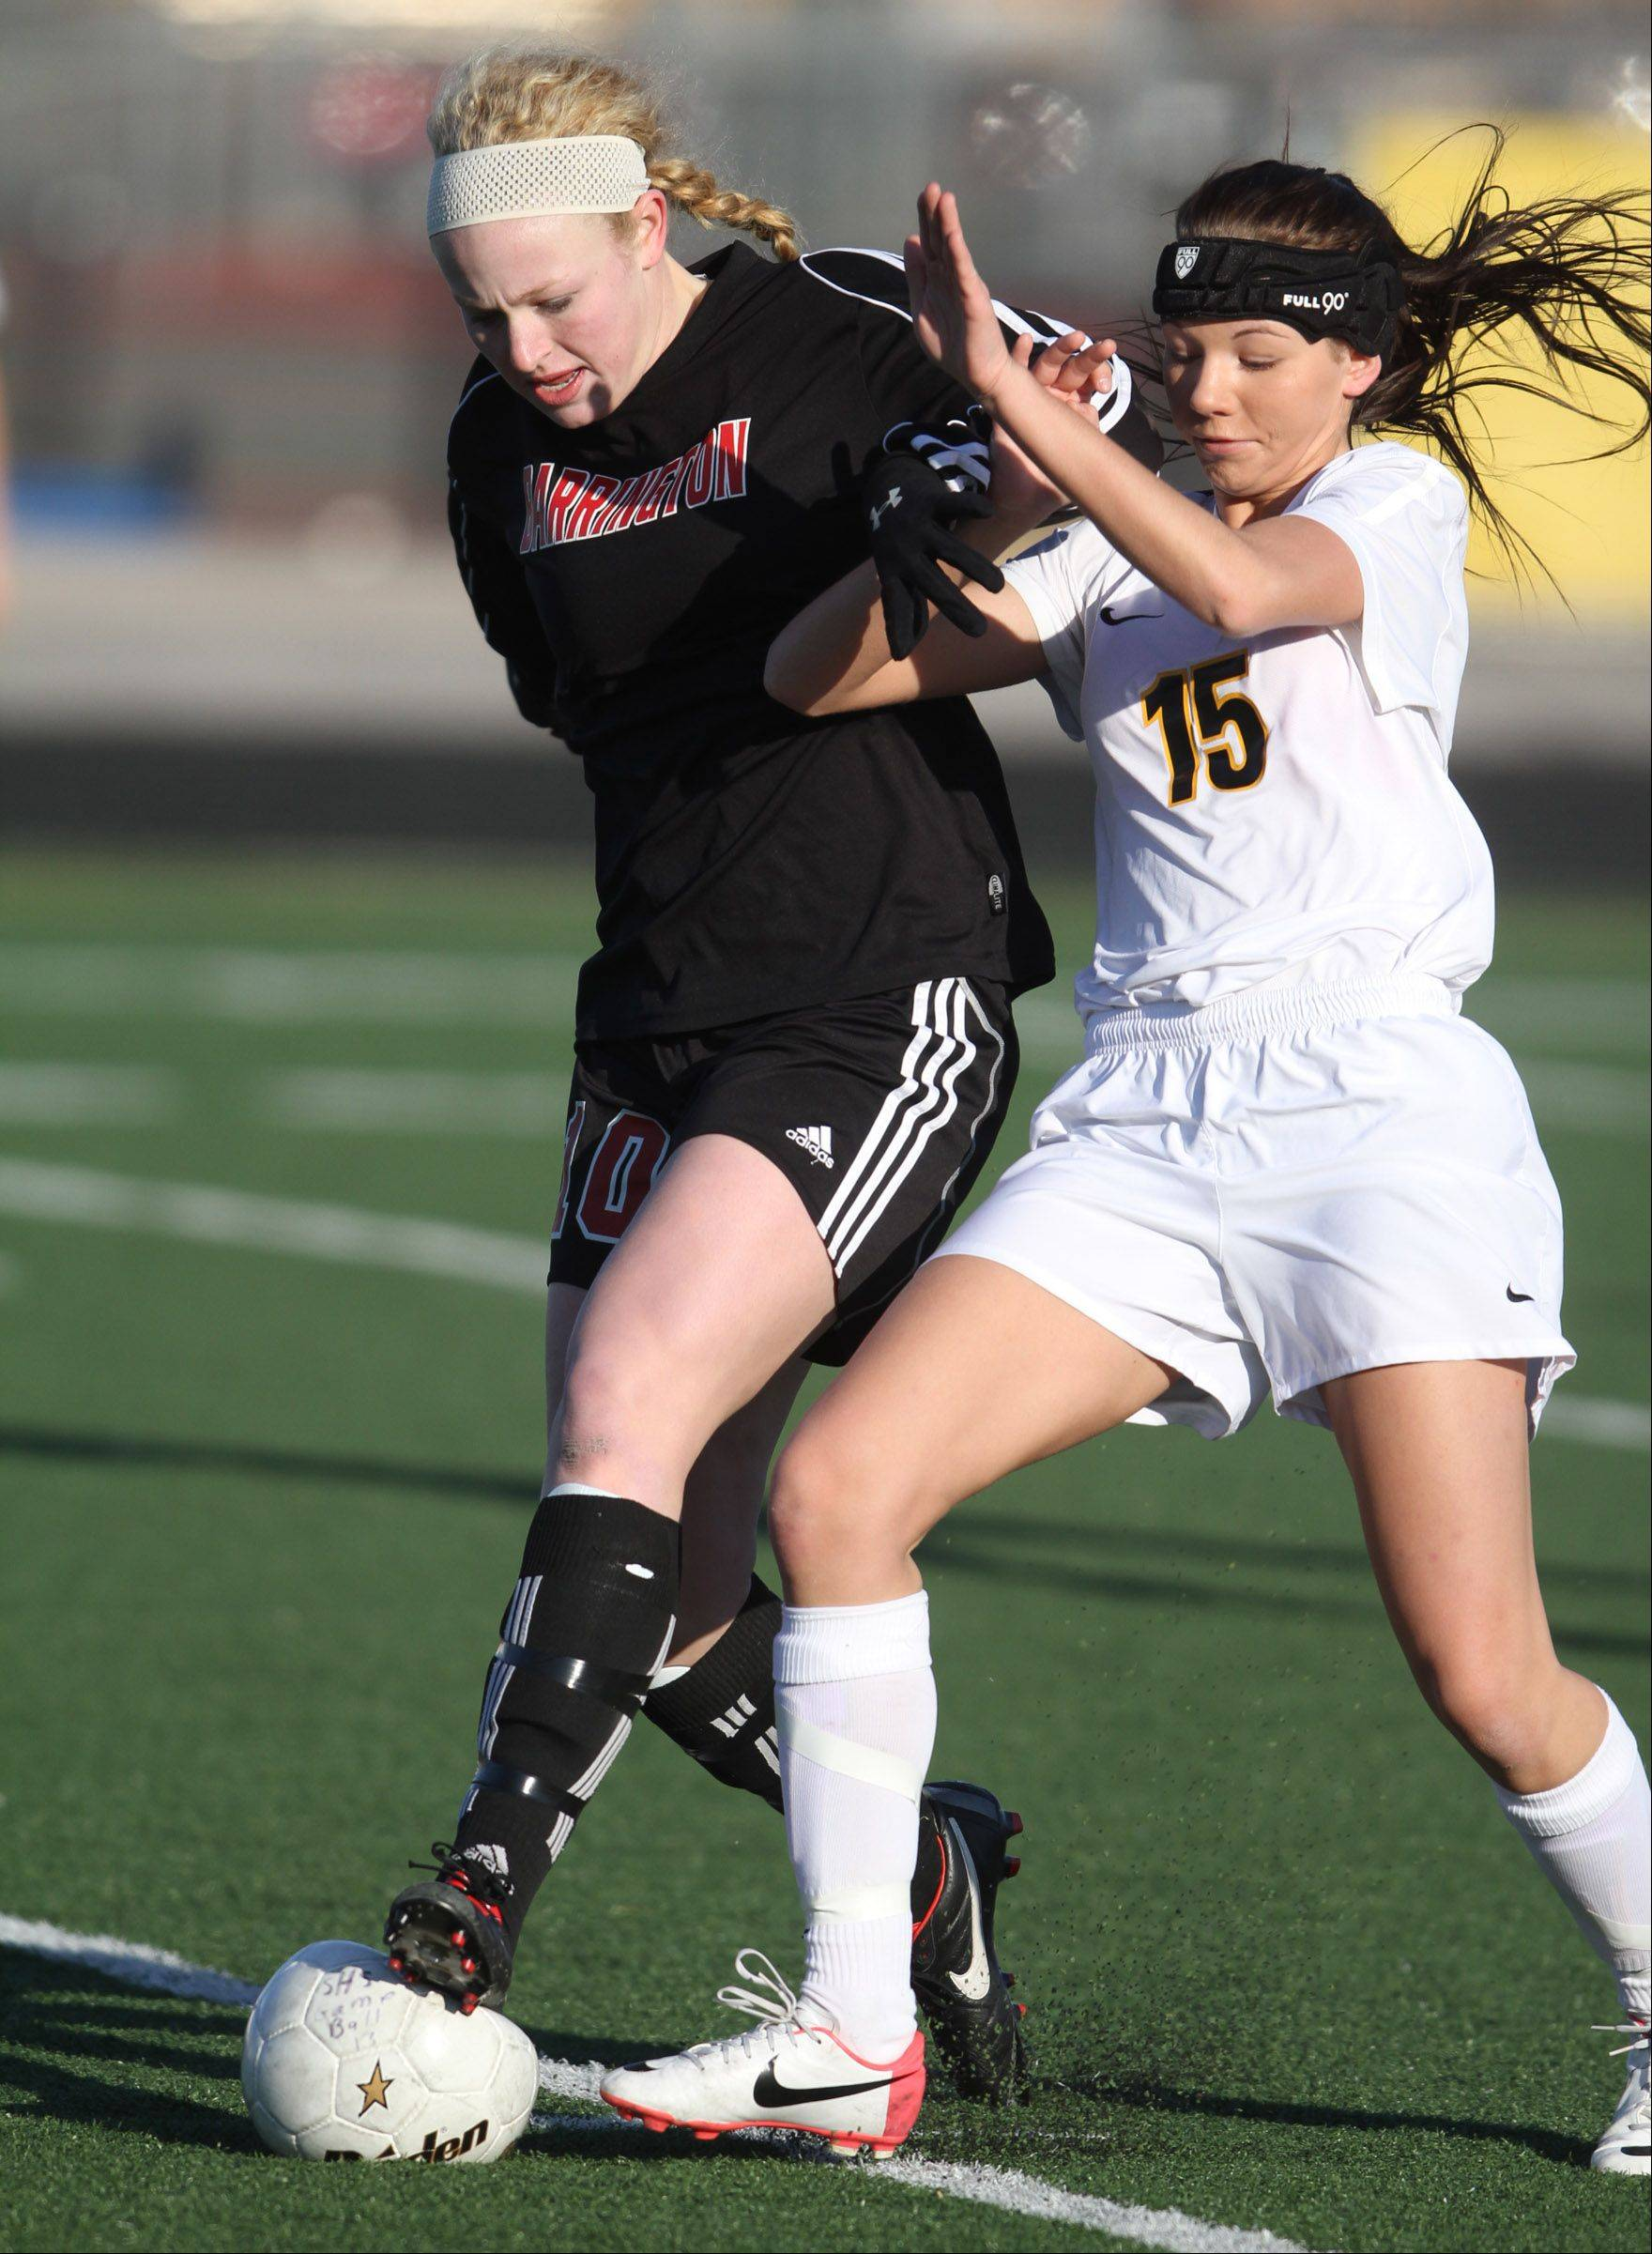 Barrington�s Molly Pfeiffer and Schaumburg�s Brooke Molitor battle for control of the ball.